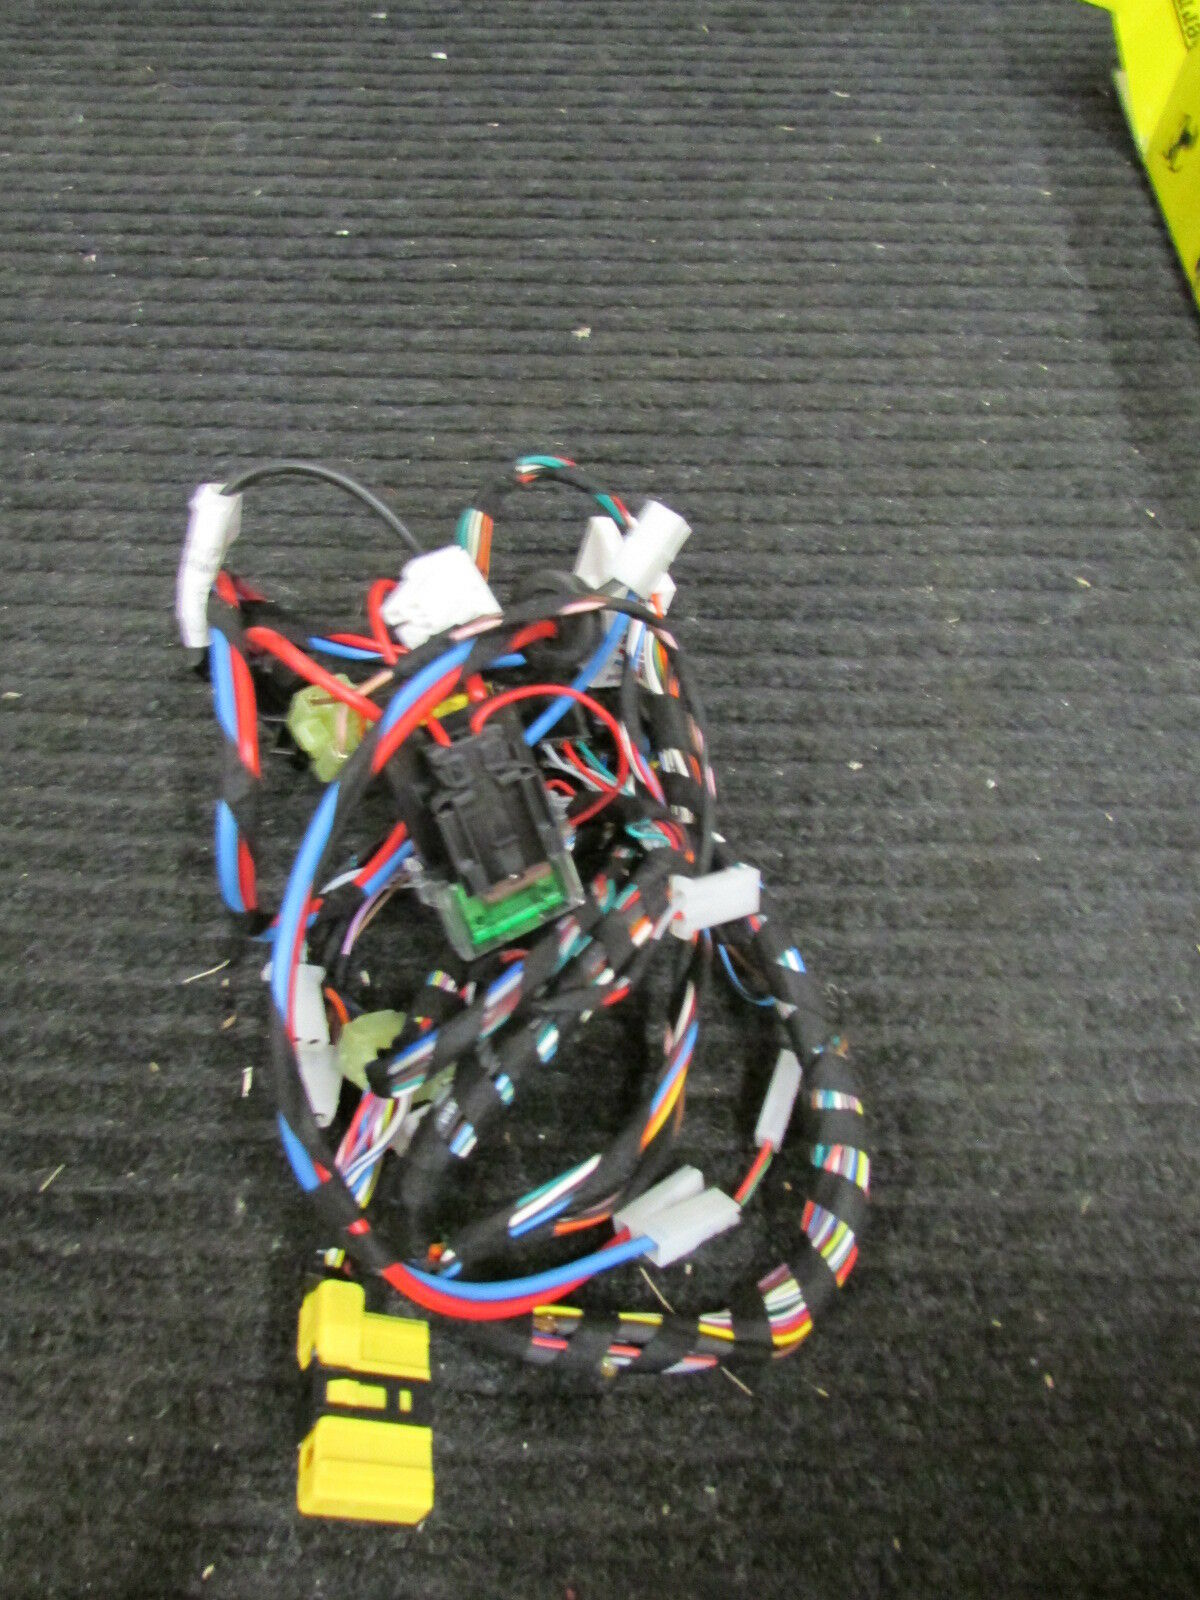 ferrari f430 360 ac wiring harness p n 65229900 ebay Water Heater Wiring Harness  Chrysler Wiring Harness Wire Harness Drawing Wiring Board